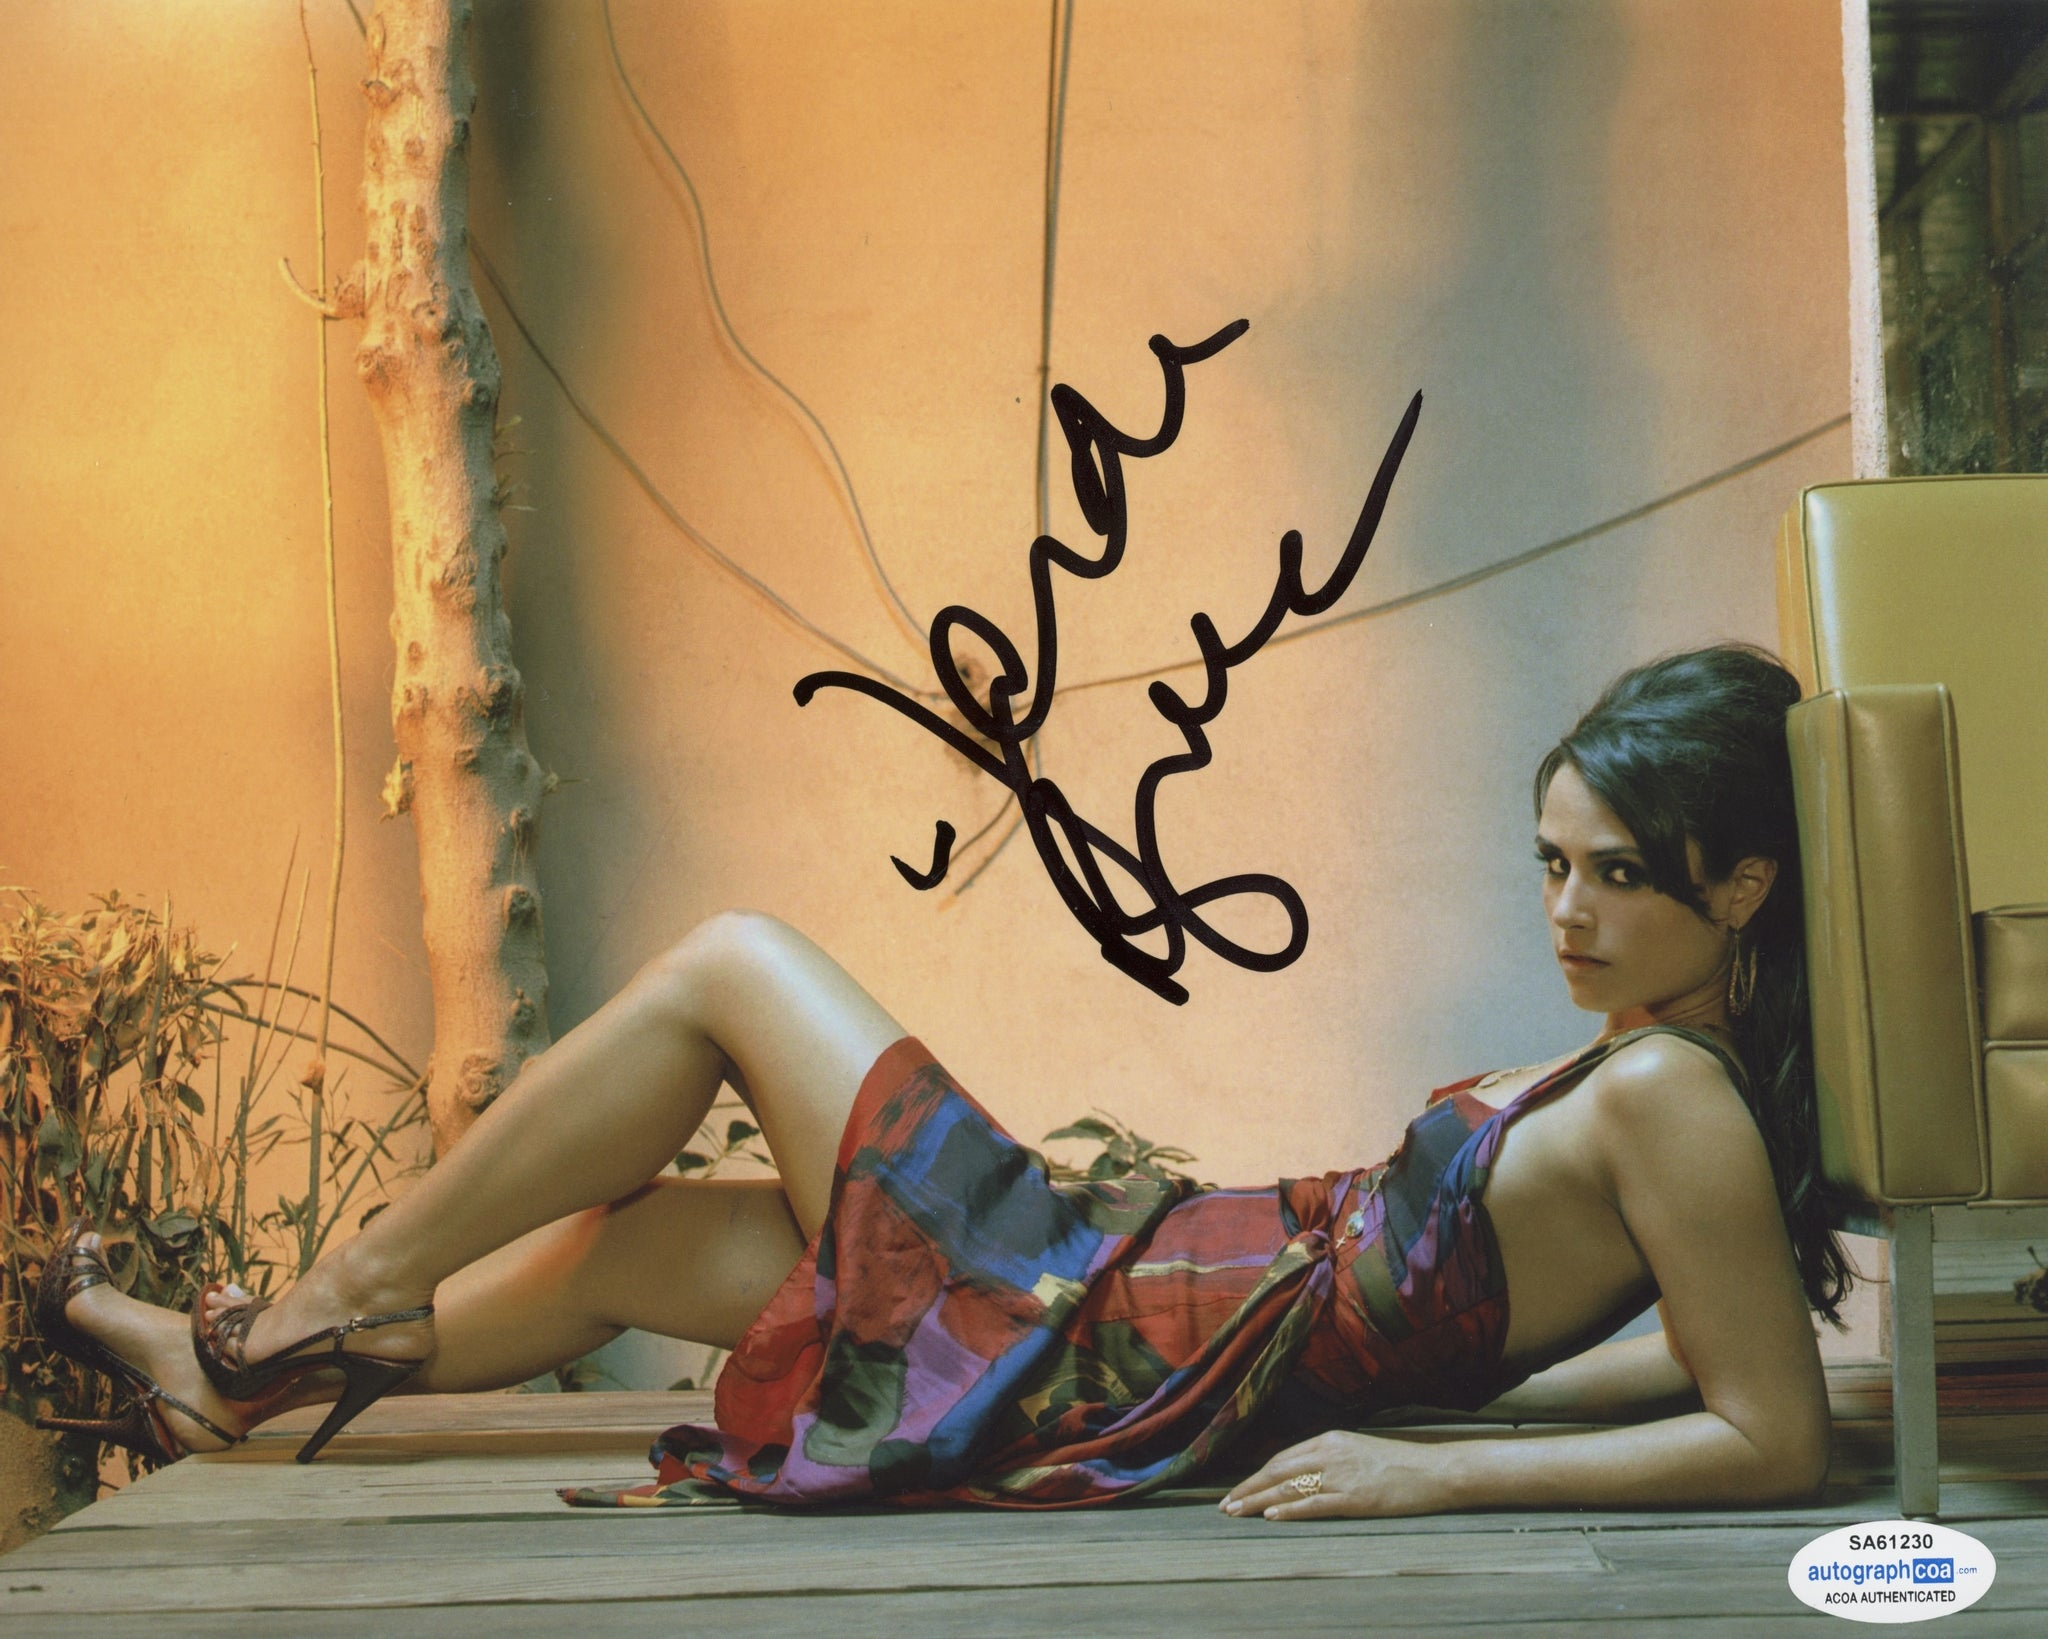 Jordana Brewster Fast and Furious Signed Autograph 8x10 Photo ACOA